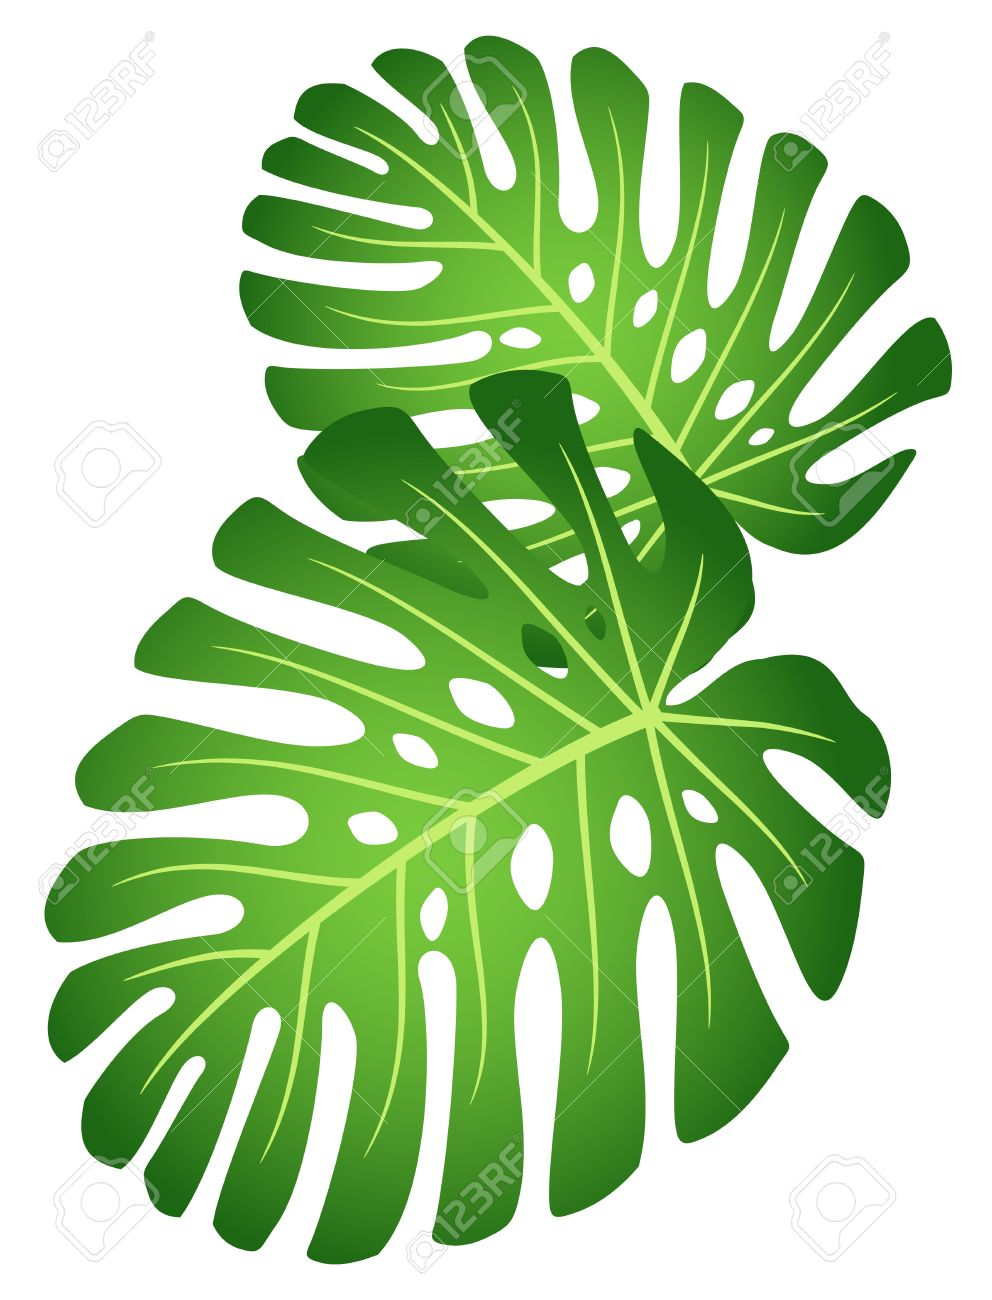 Rainforest Plants Clipart at GetDrawings.com.